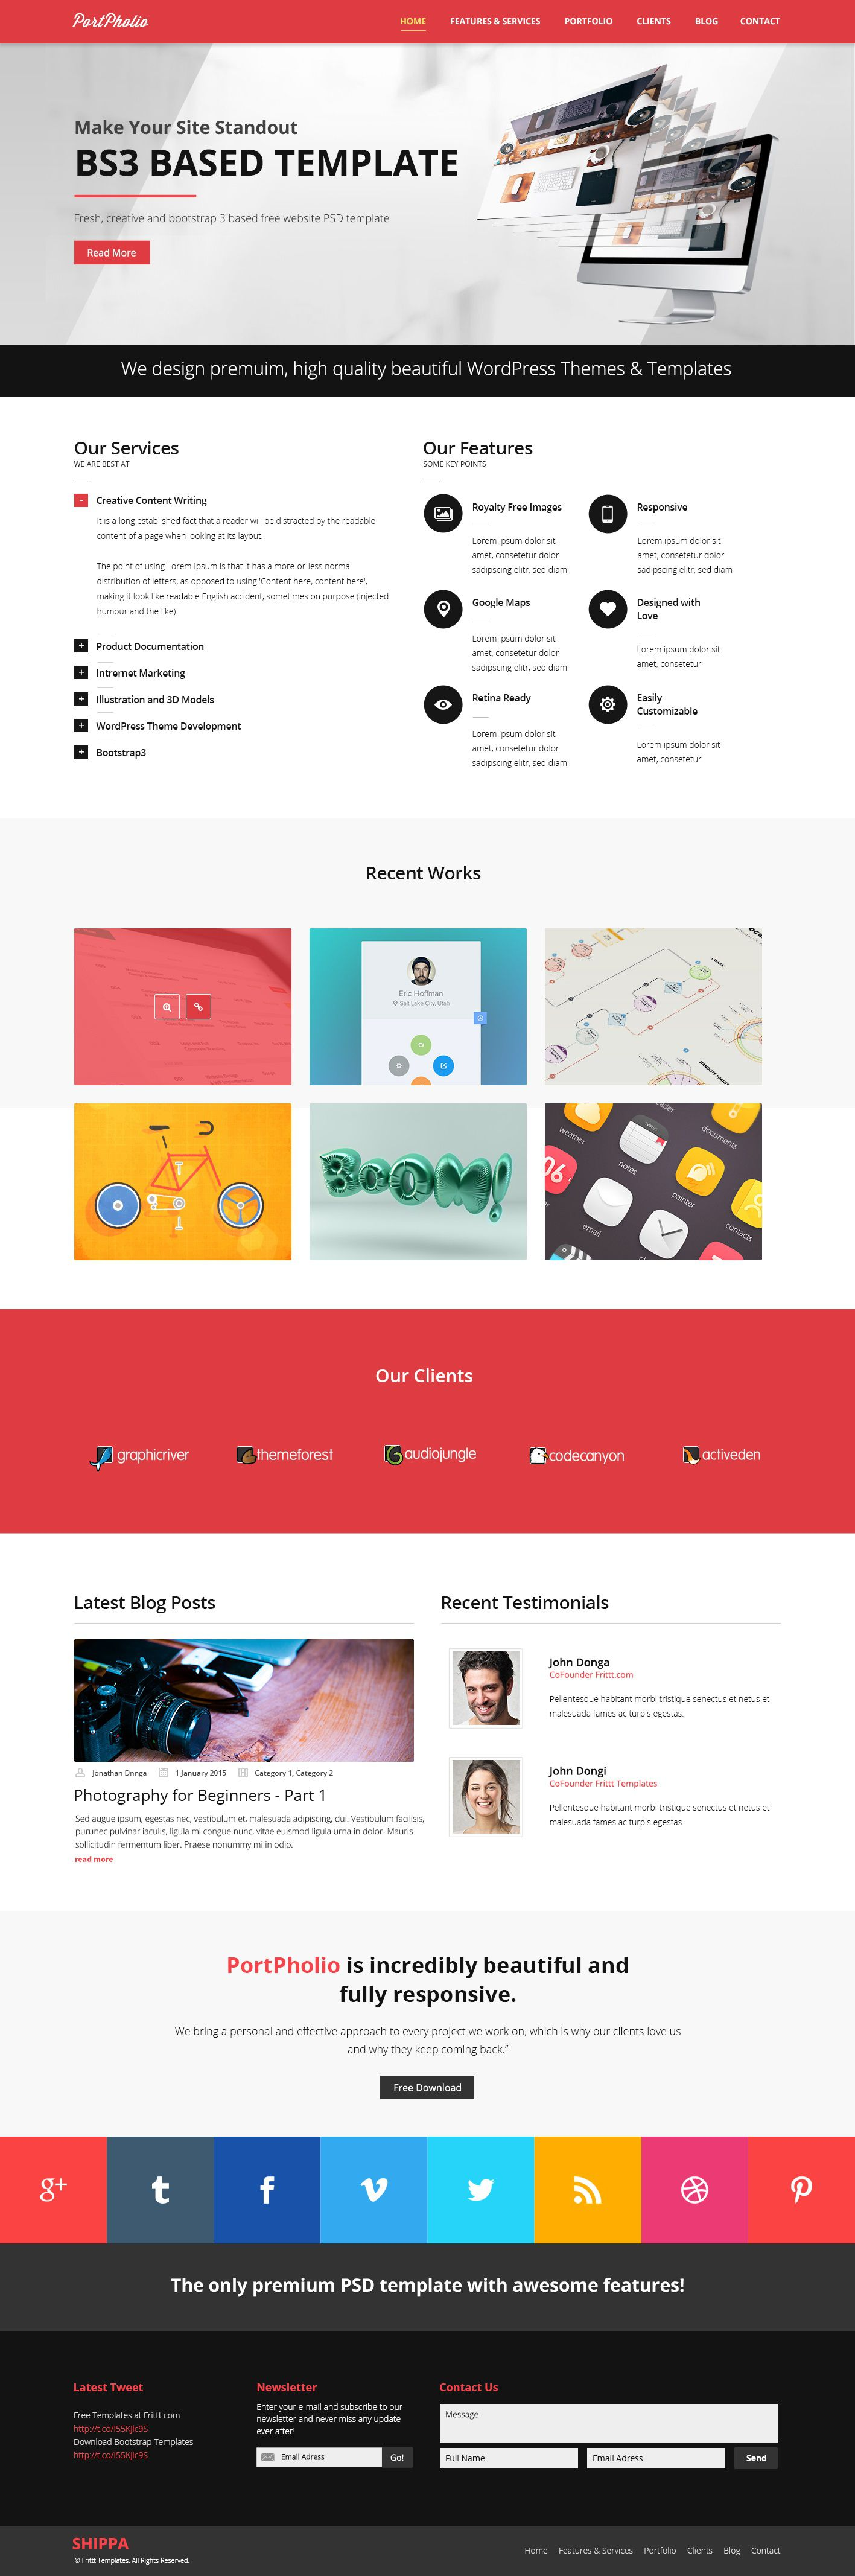 003 Rare One Page Website Template Psd Free Download Sample Full